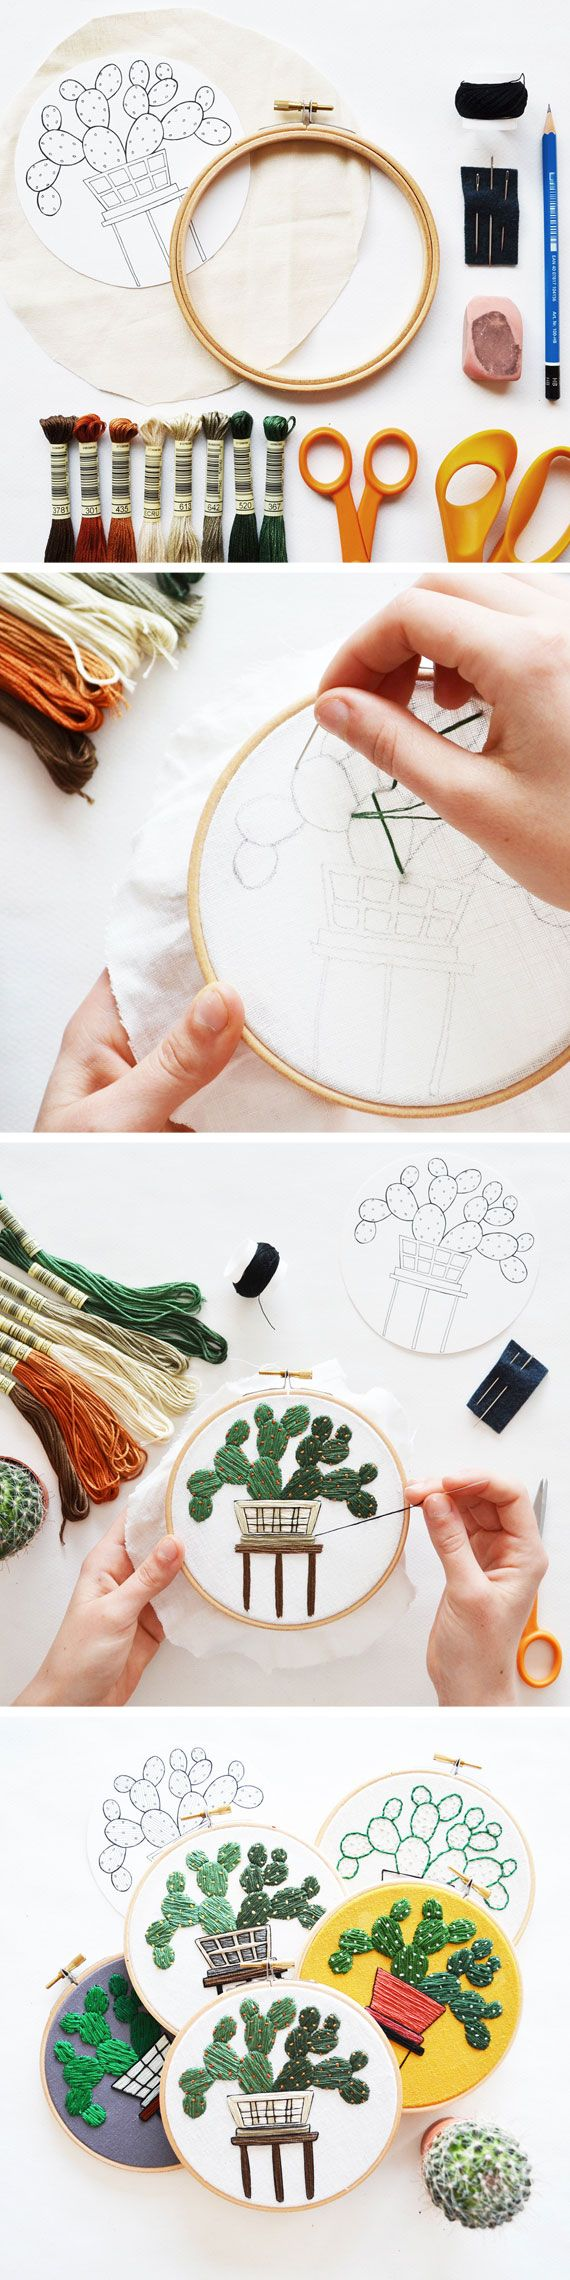 Stitch up your own version of one of @sarahkbenning's impressive designs with an instant-download pattern from her #Etsy shop. #DIY